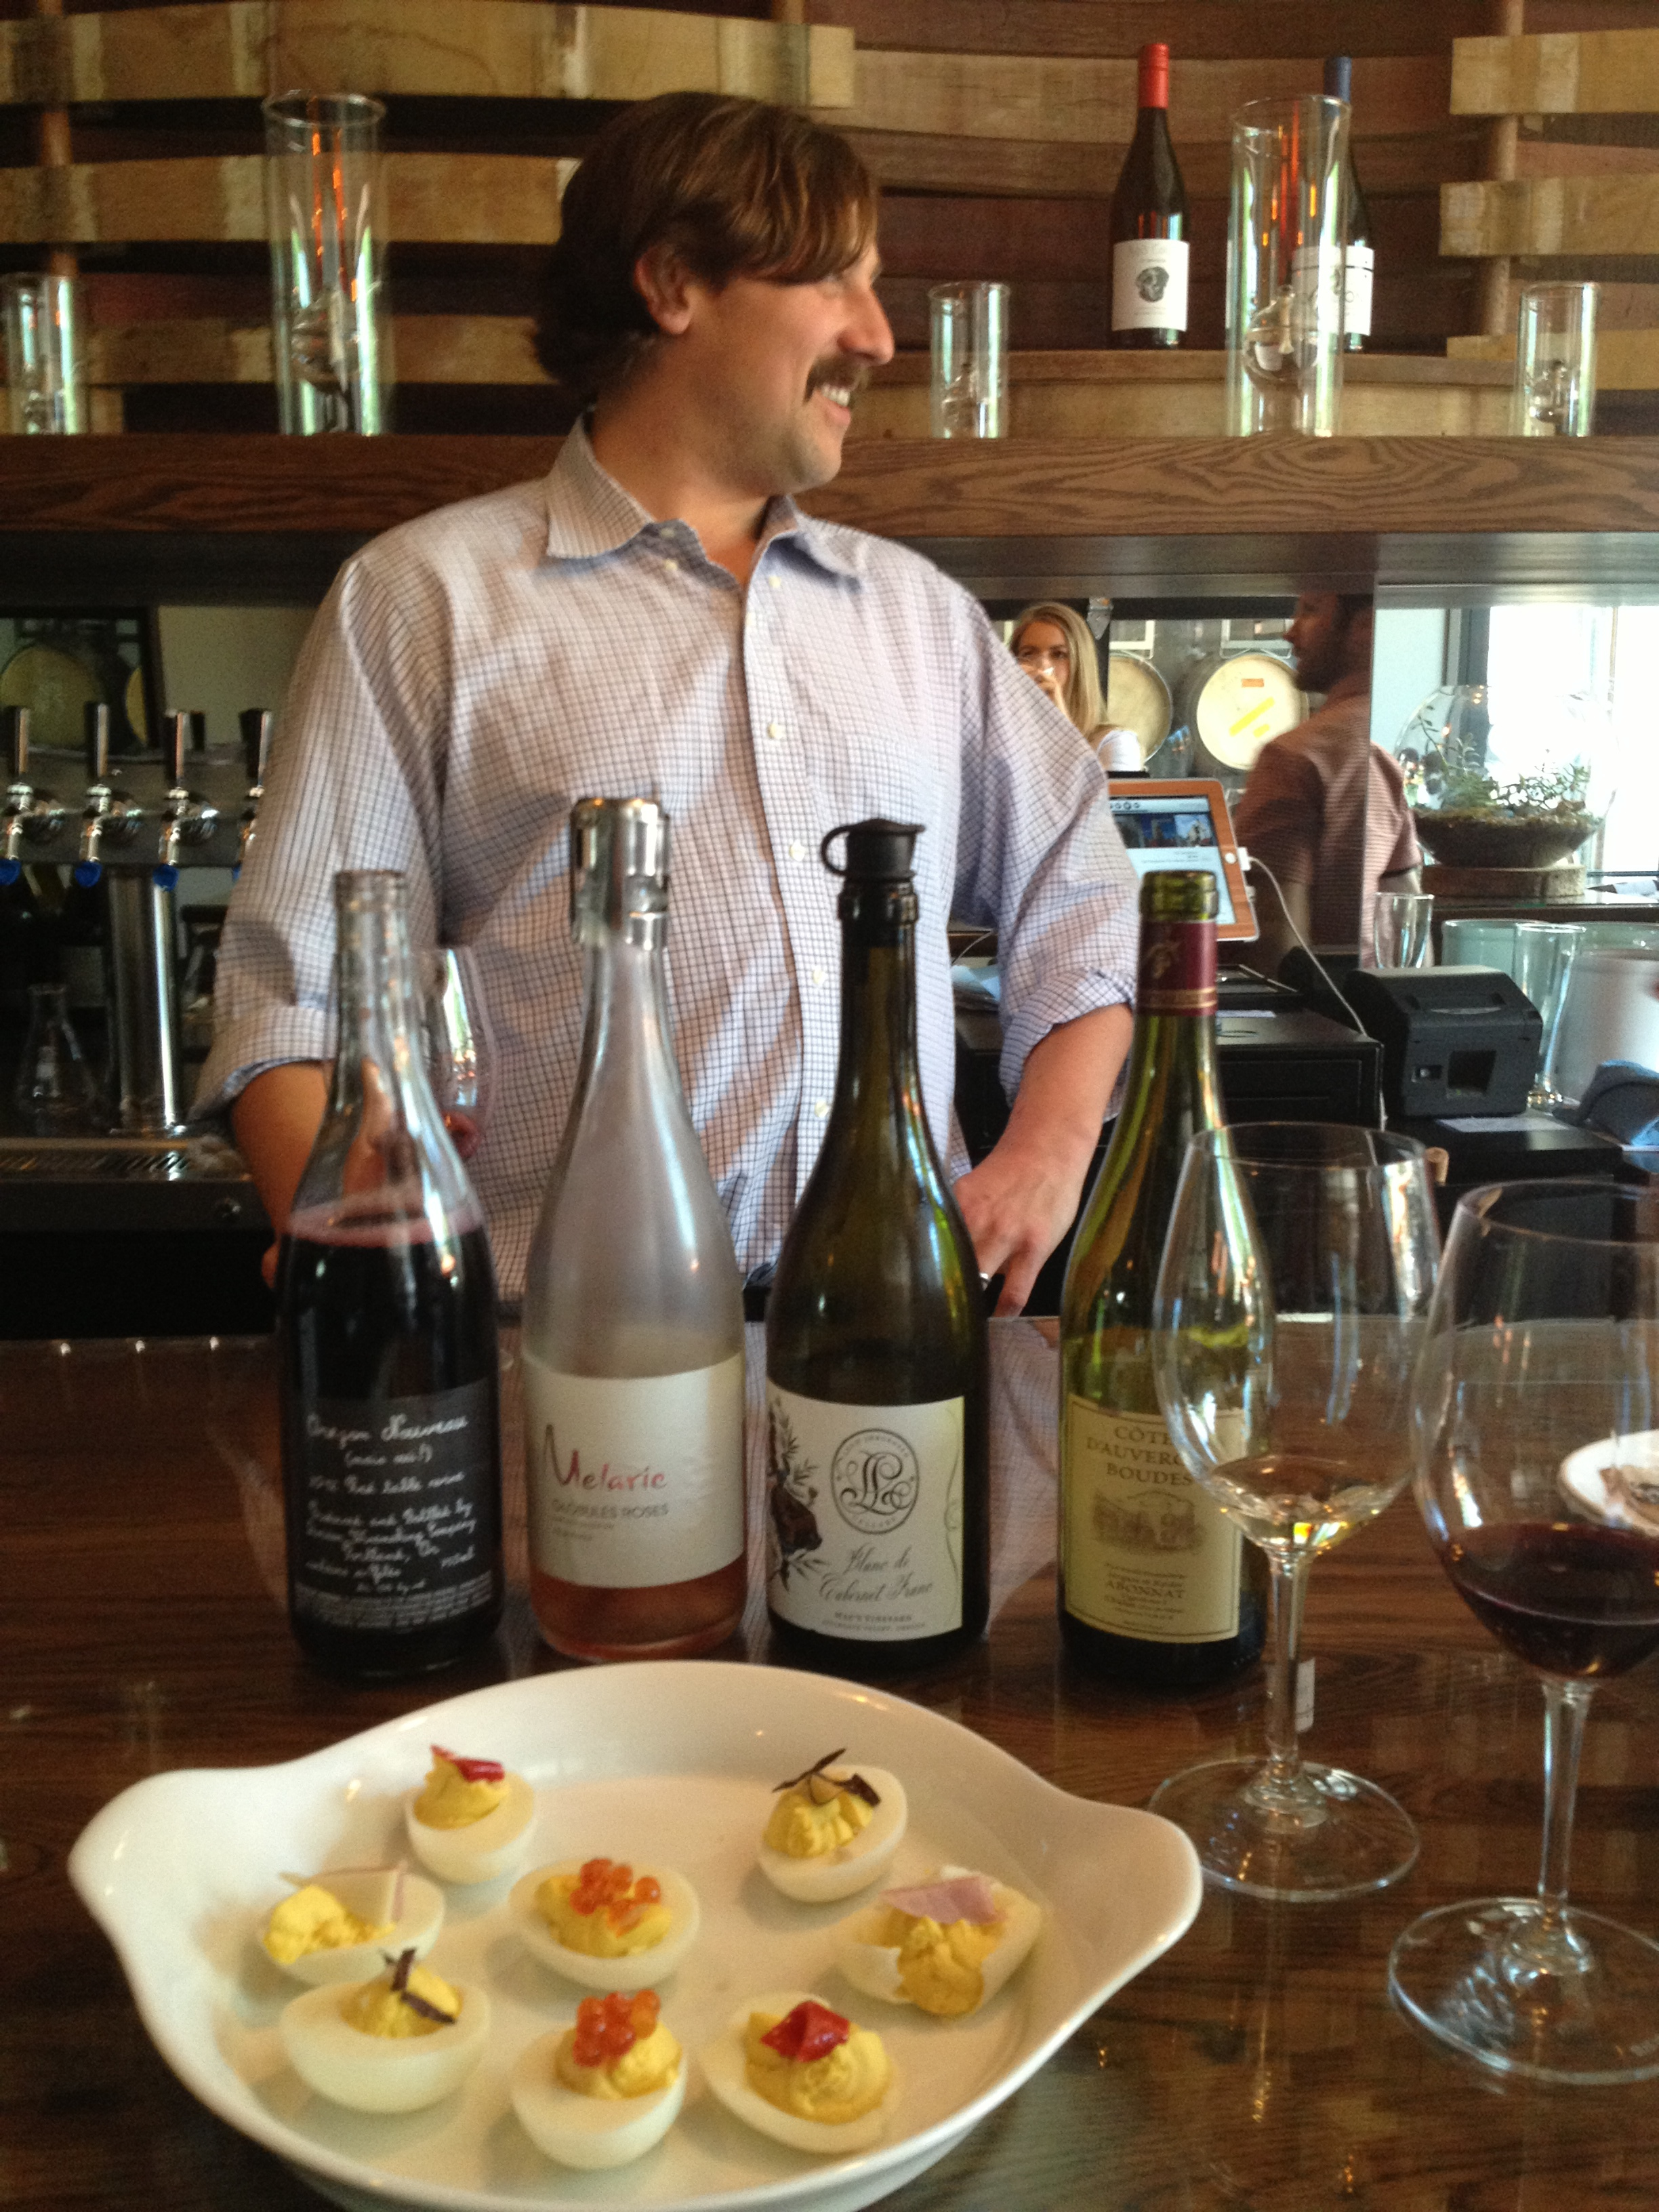 Fun impromptu tasting with Tom, owner of the South East Wine Collective and winemaker of Division Wine Making Company.